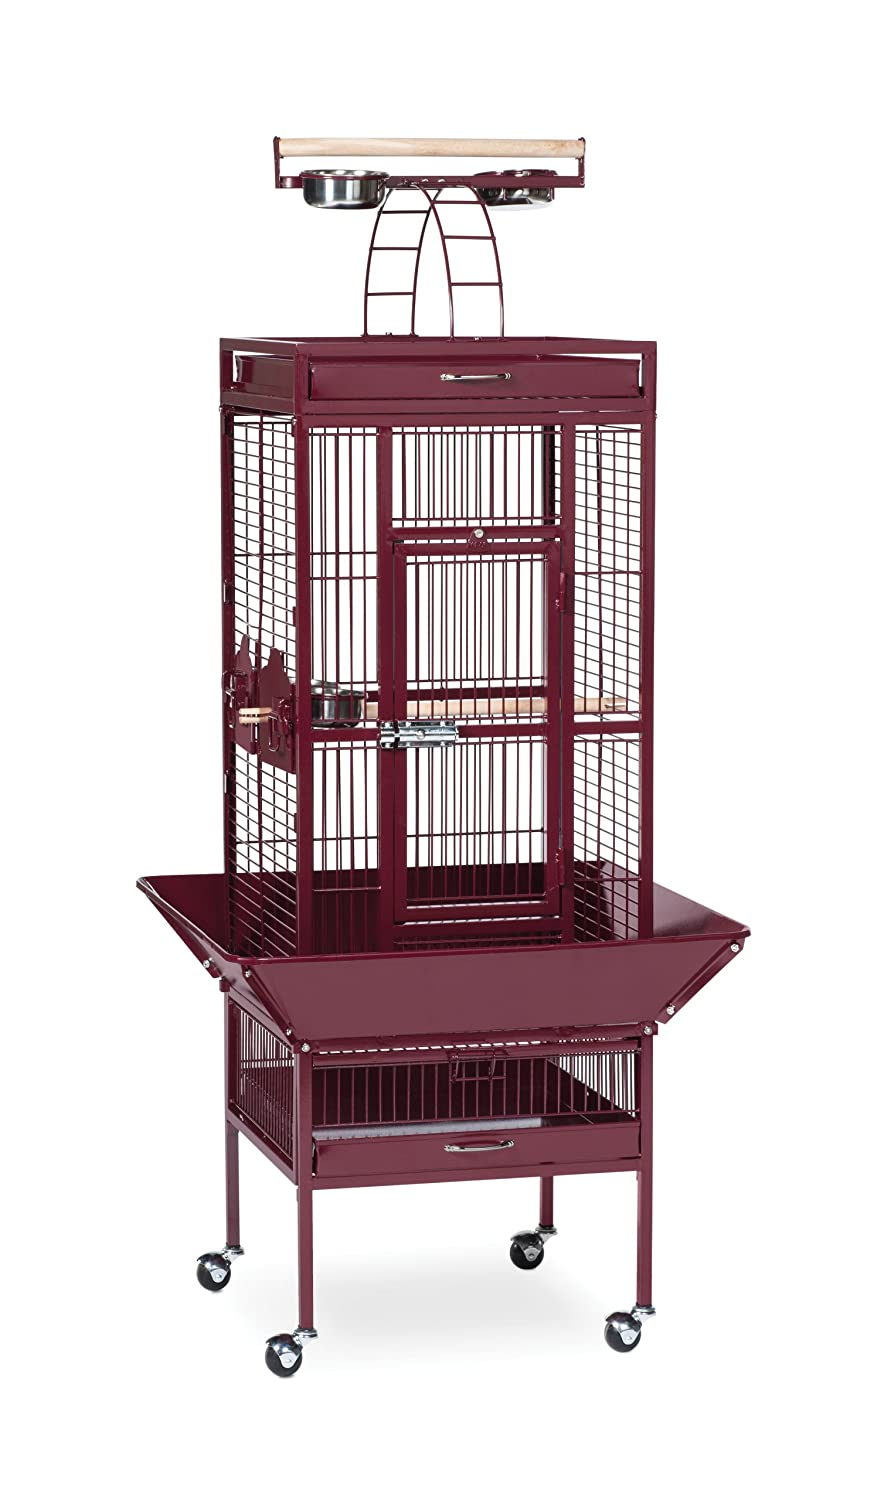 Garnet Red Prevue Hendryx Pet Products Wrought Iron Select Bird Cage, Garnet Red